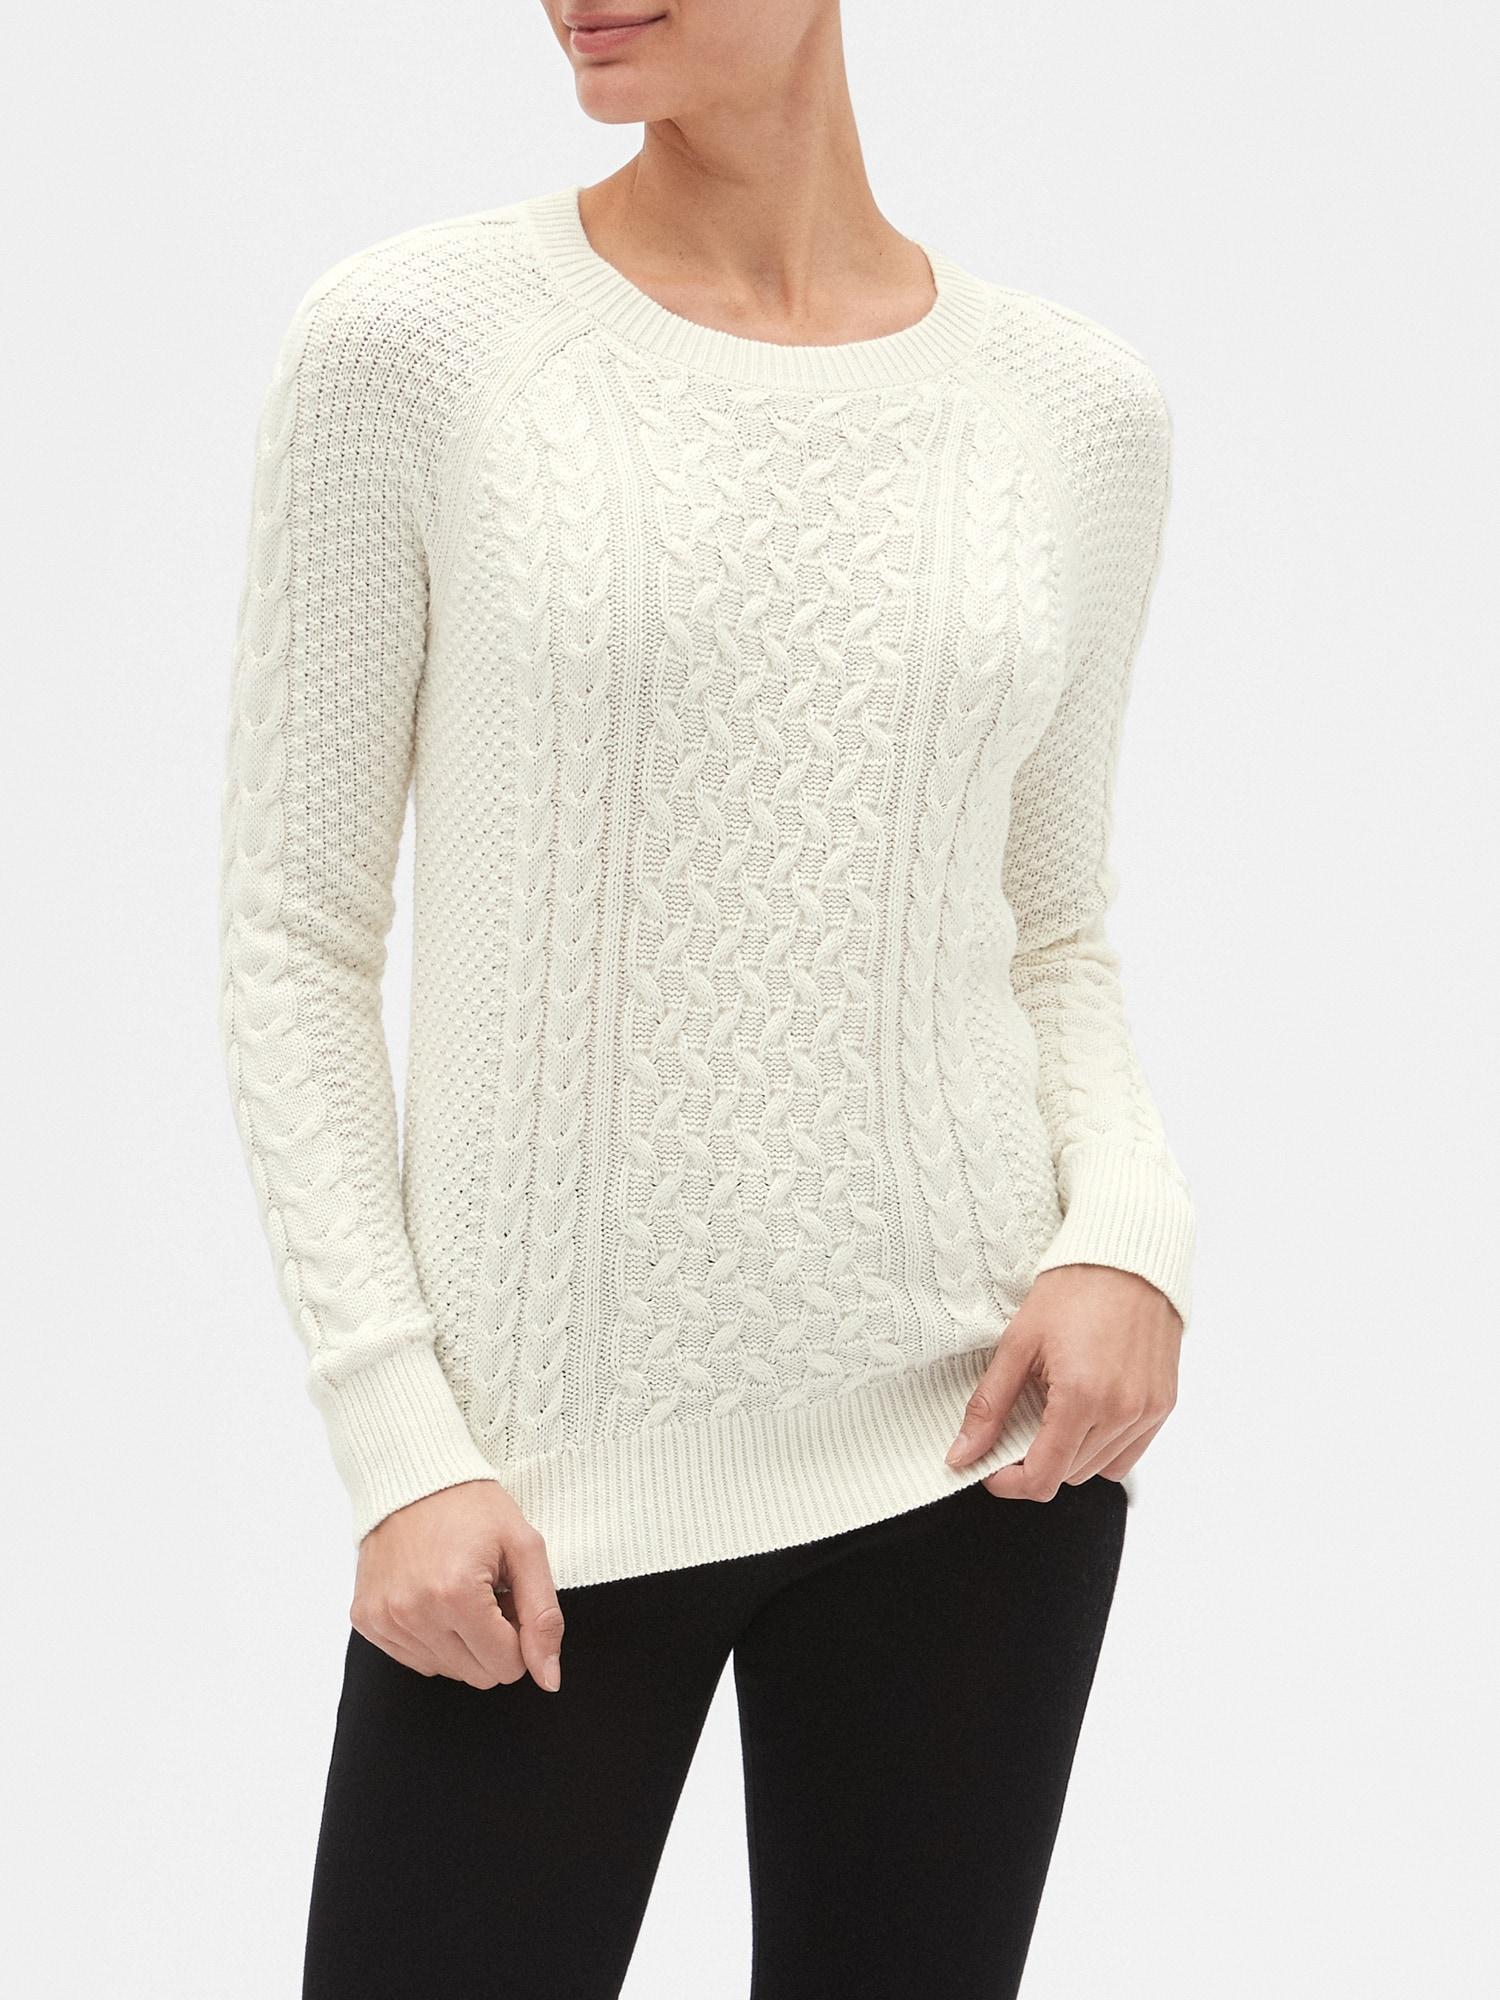 Lyst - GAP Factory Cable-knit Crewneck Pullover Sweater in White 063a1c697